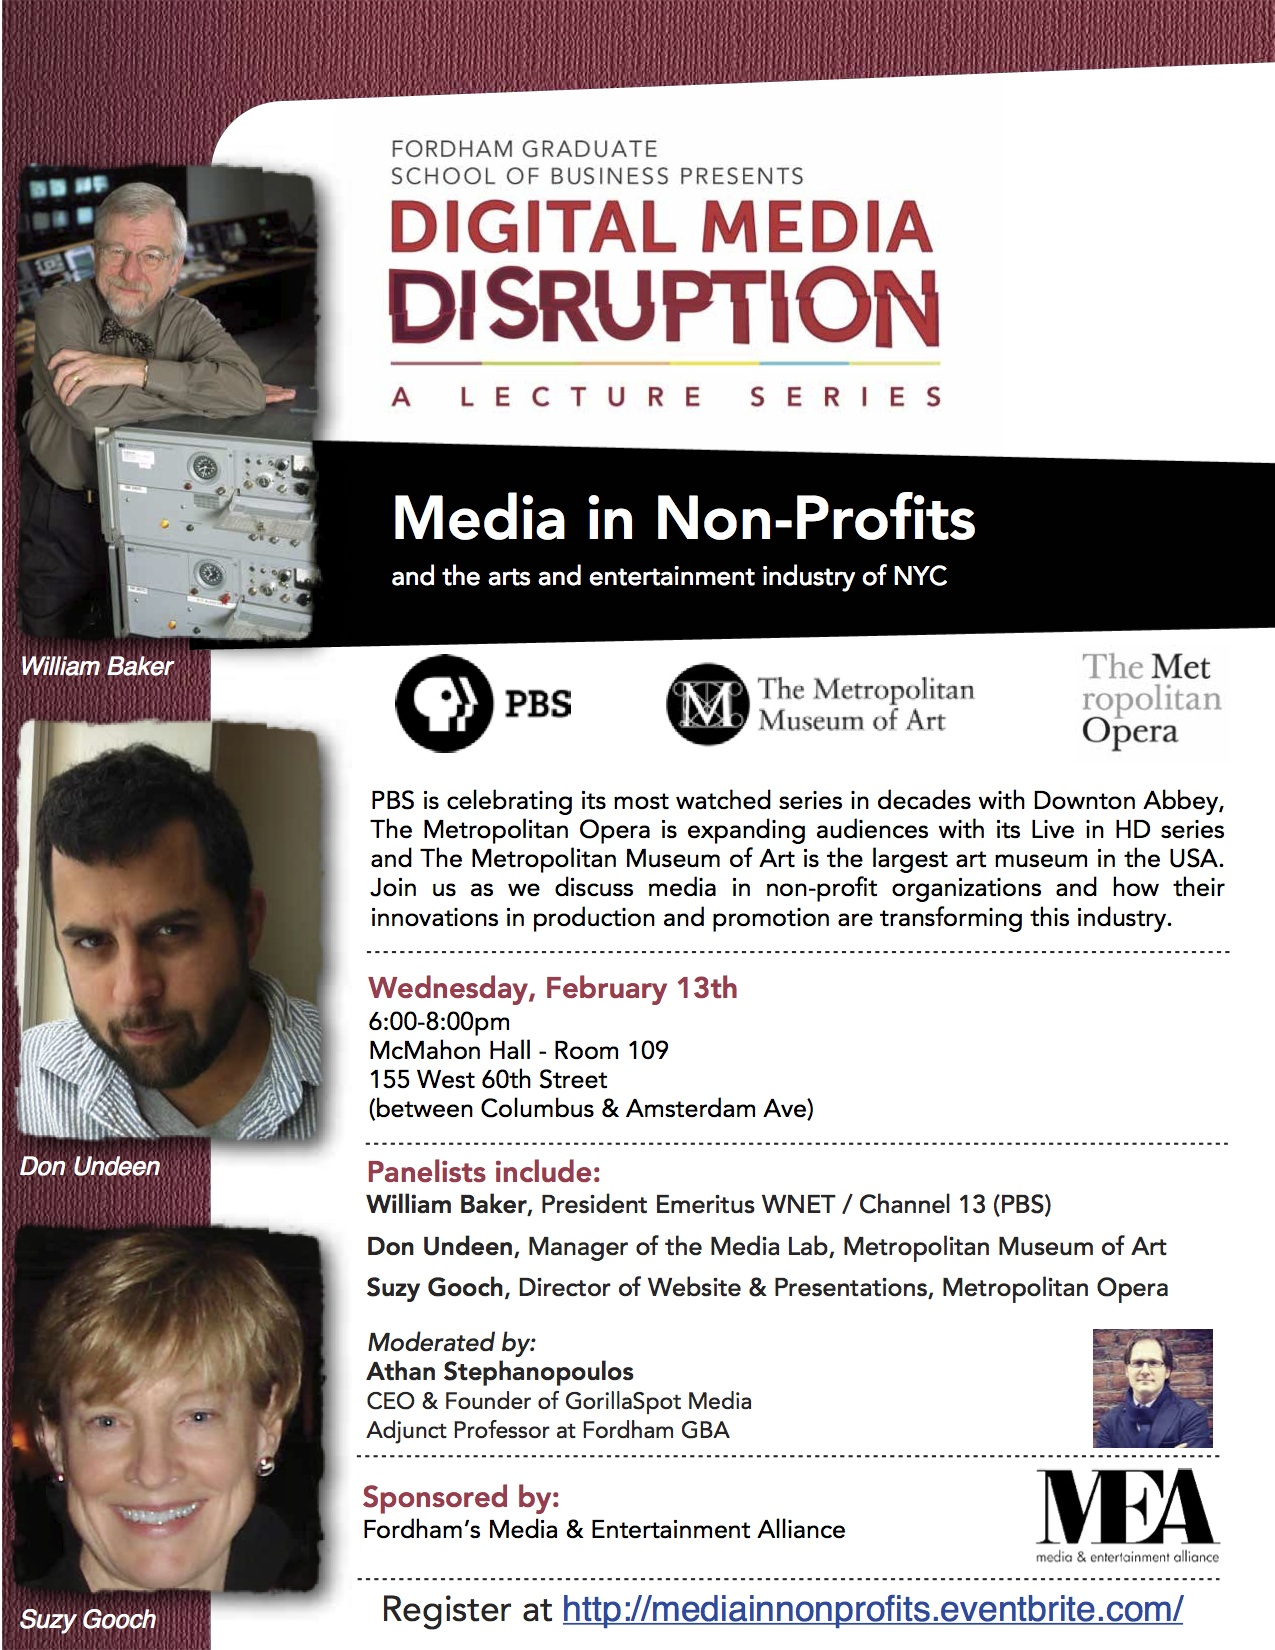 Digital Disruption flyer